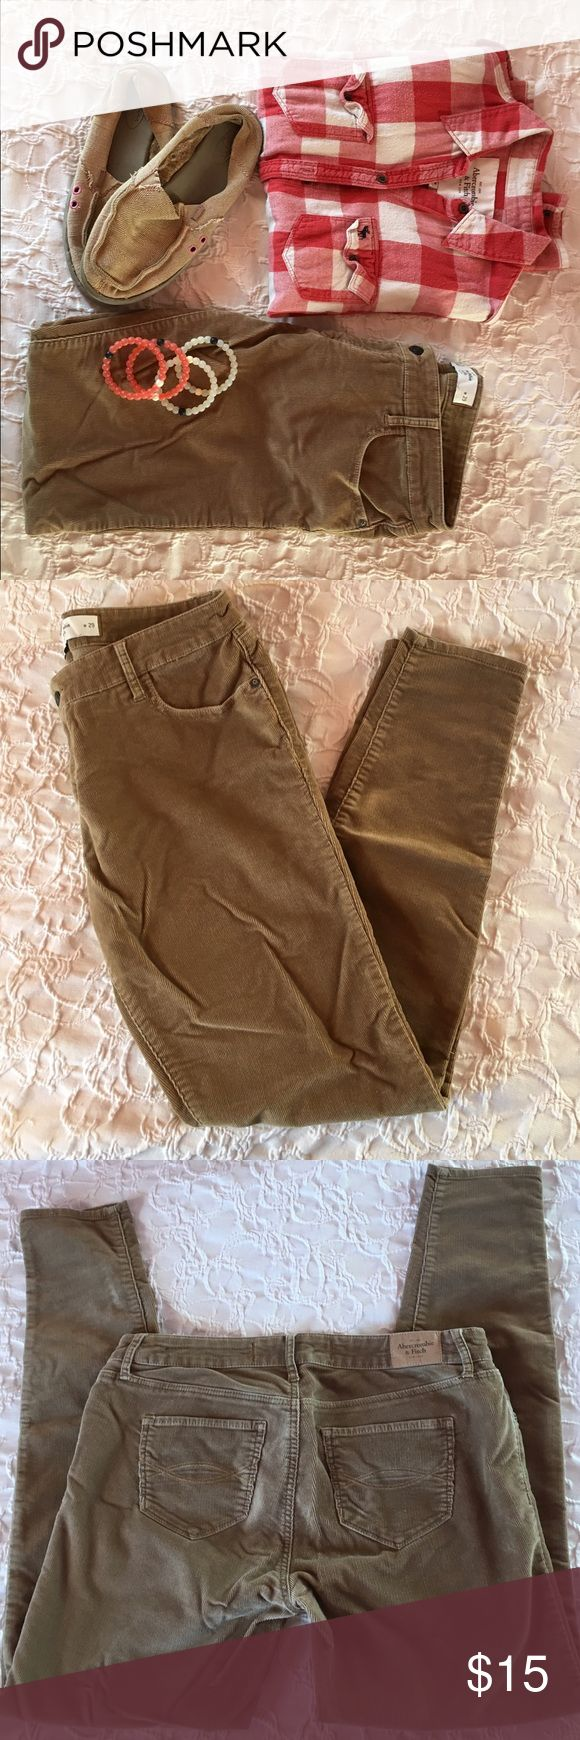 Tan Abercrombie jeans Tan/light brown preloved corduroy jeggings. Super cute with any outfit! In great condition Abercrombie & Fitch Jeans Skinny